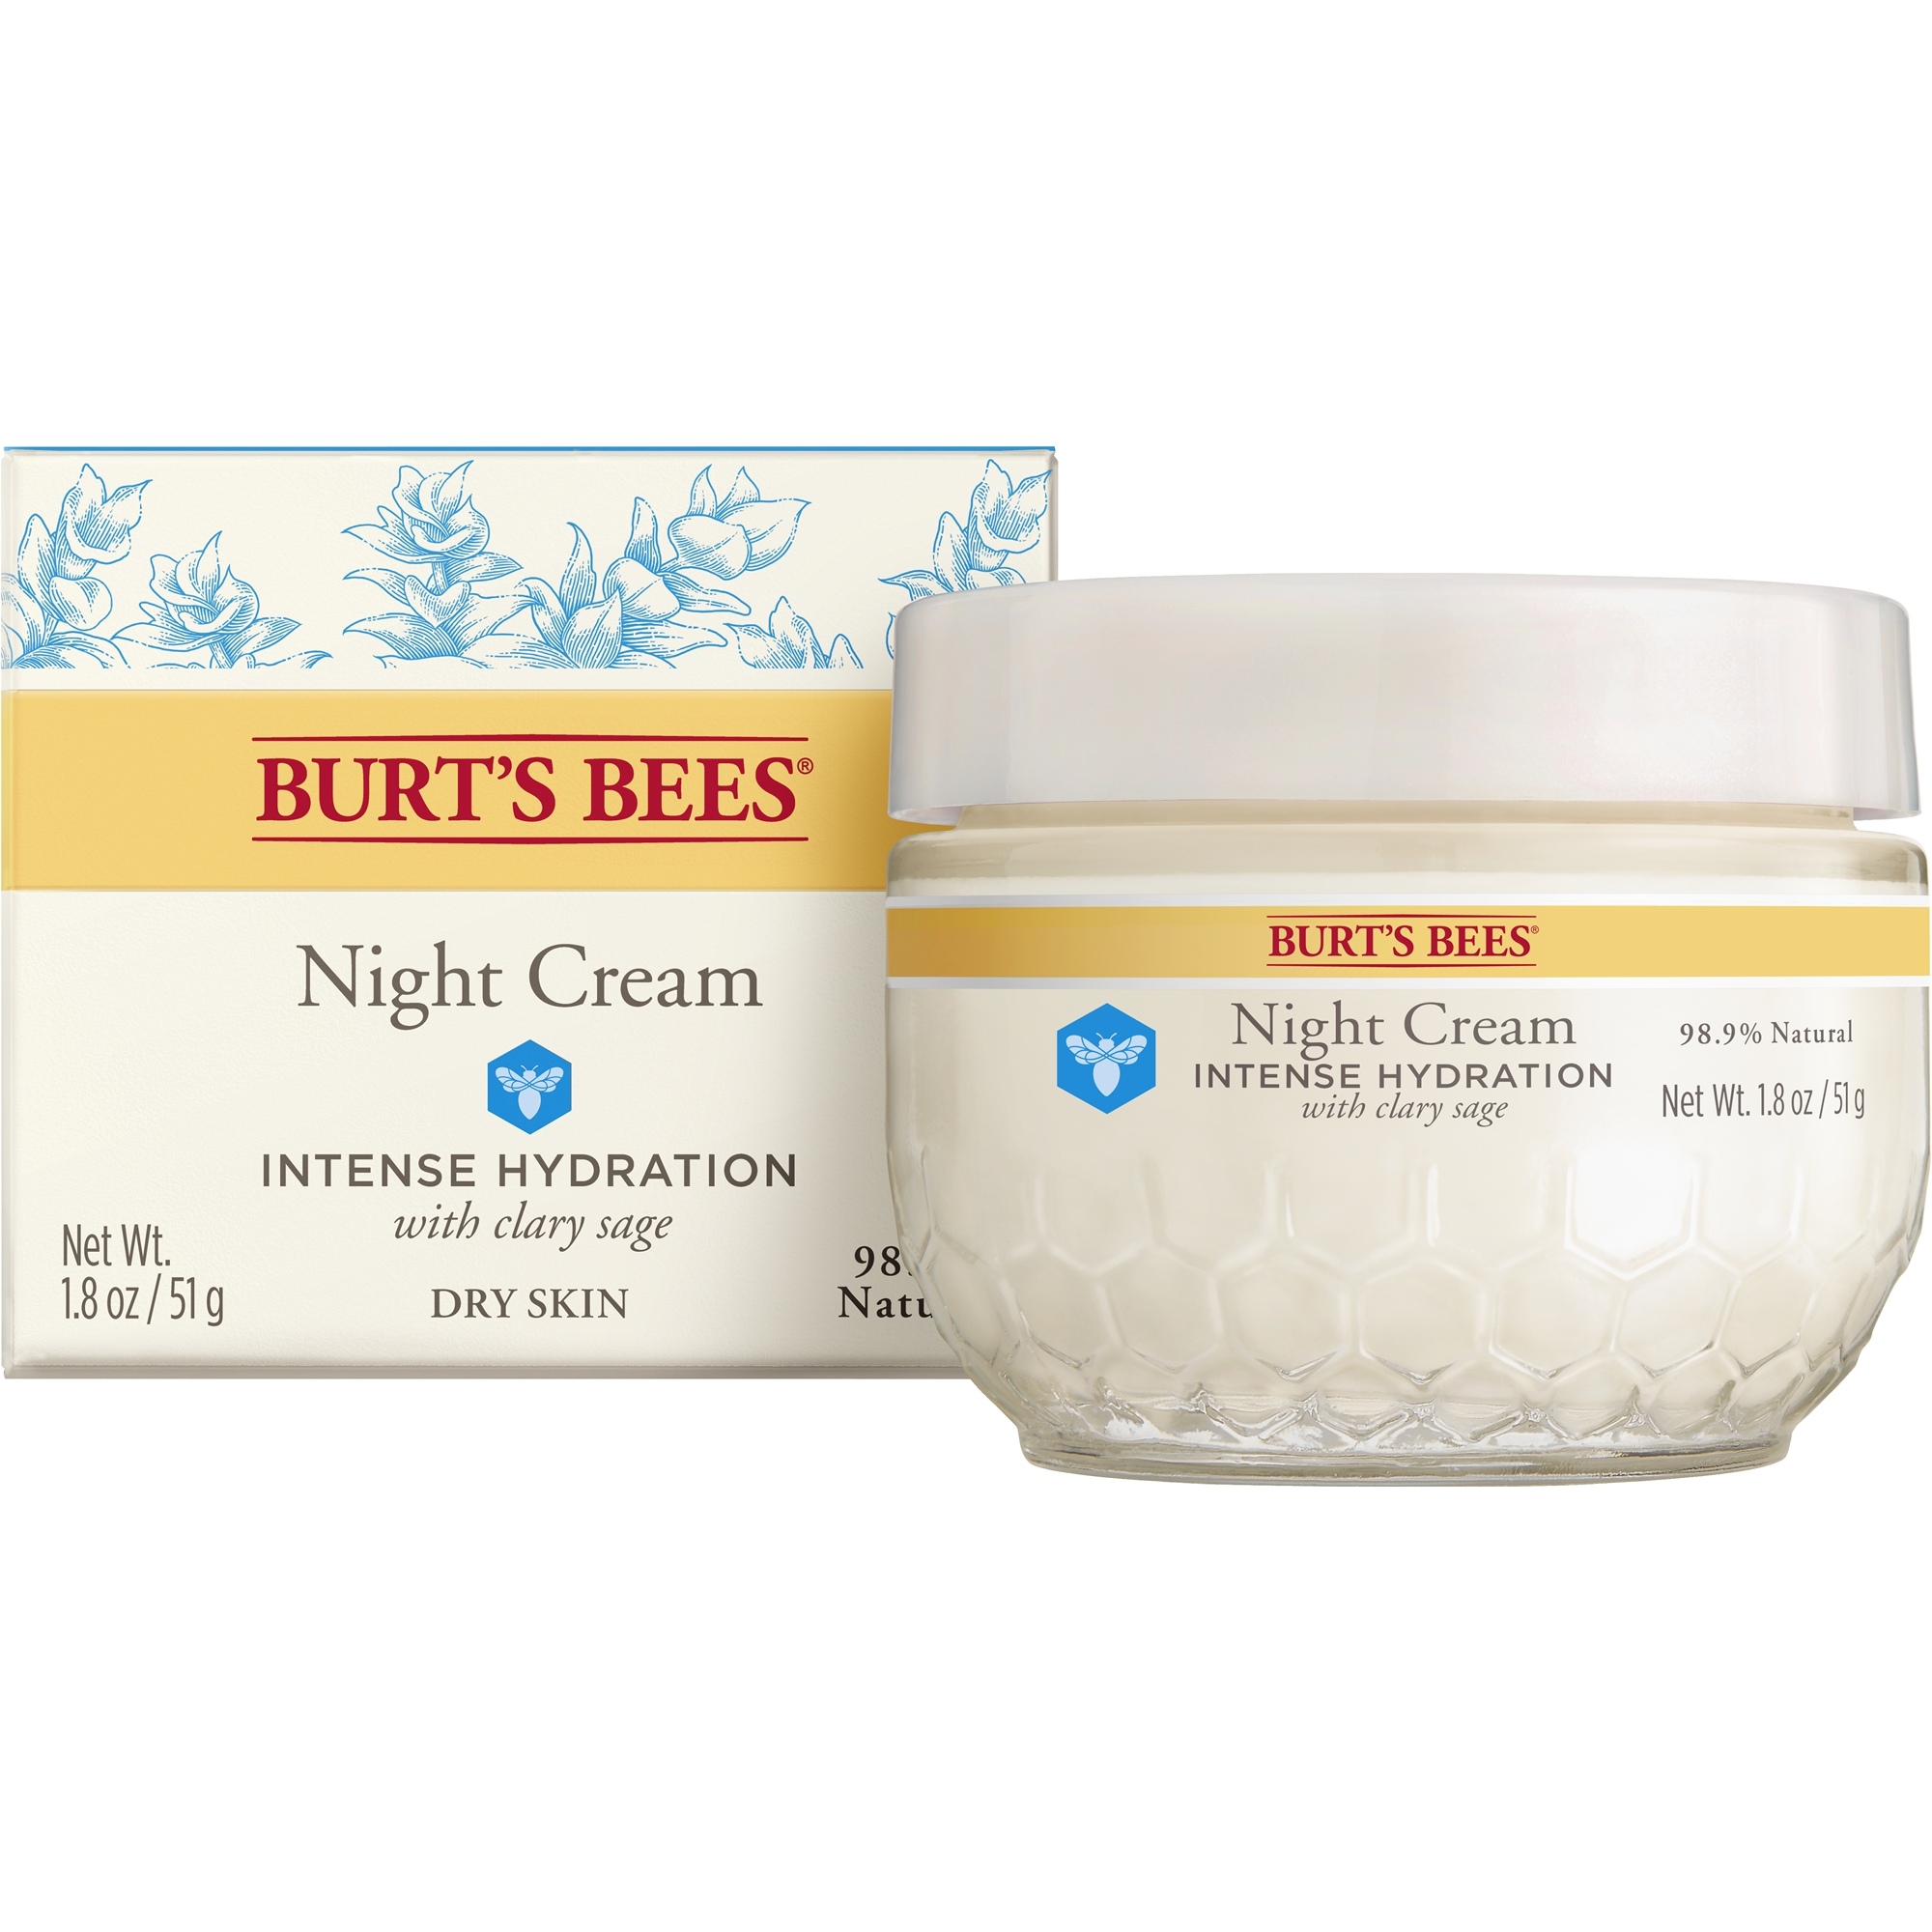 Burt's Bees Intense Hydration Night Cream, Moisturizing Night Lotion, 1.8 oz